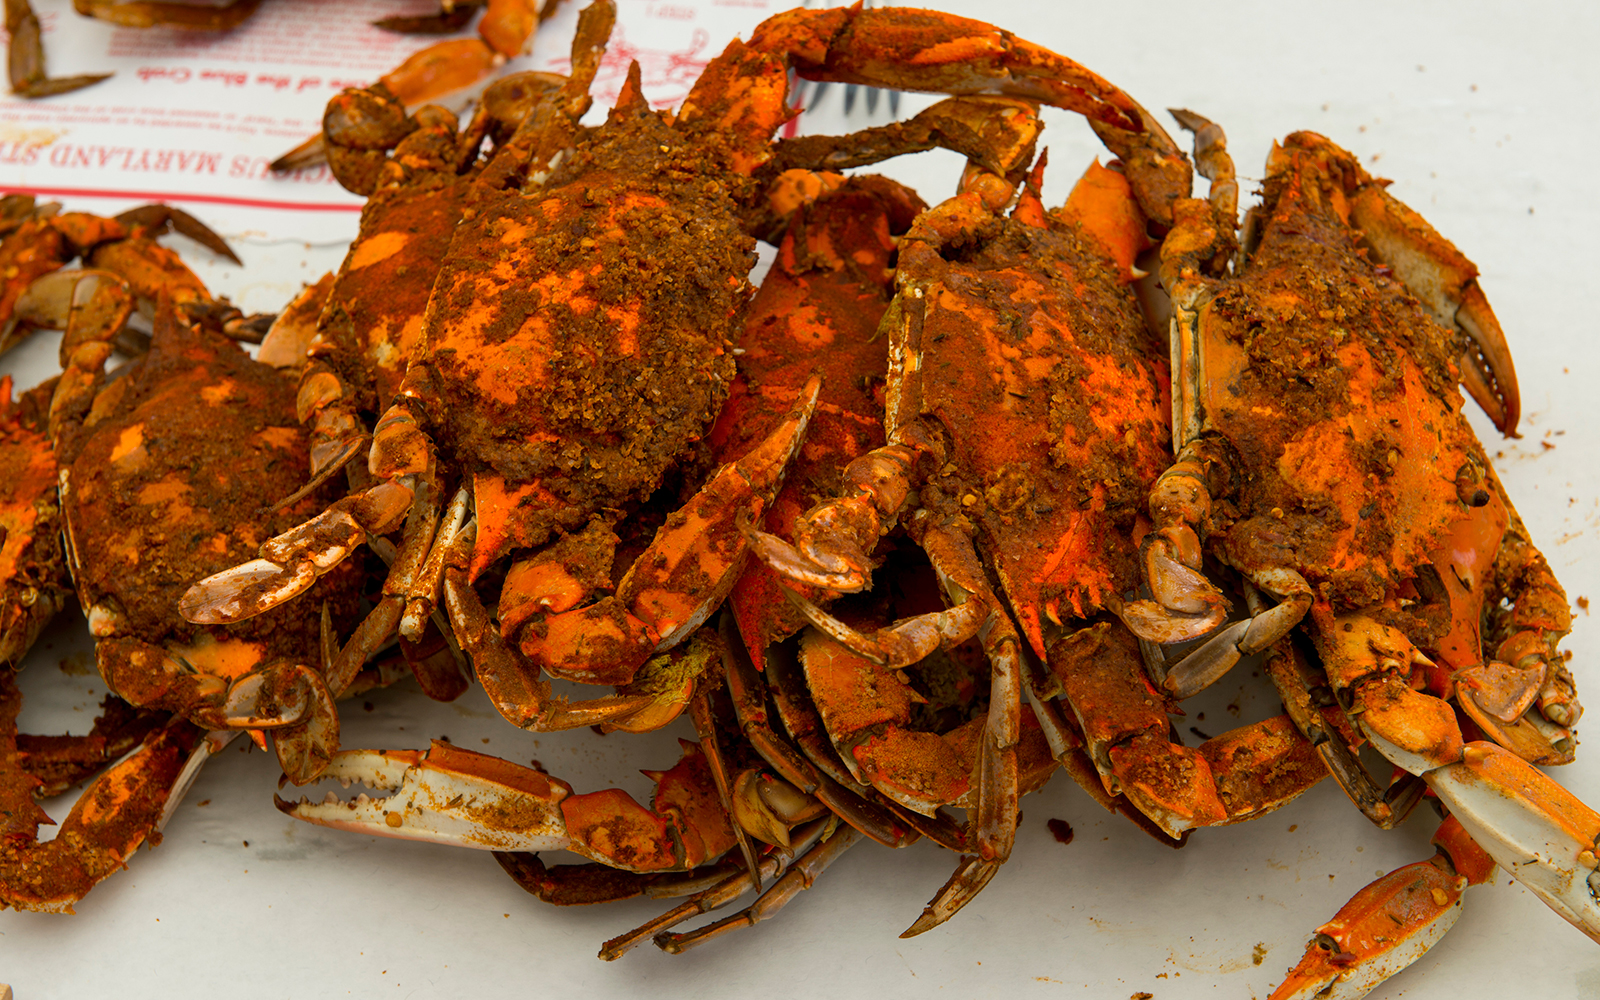 MARYLAND, UNITED STATES - 2014/08/02: Maryland Blue Crabs at the Crab Claw Restaurant at the Inner Harbor of St. Michaels, a historic town in Maryland, USA, situated on Chesapeake Bay. (Photo by Wolfgang Kaehler/LightRocket via Getty Images)